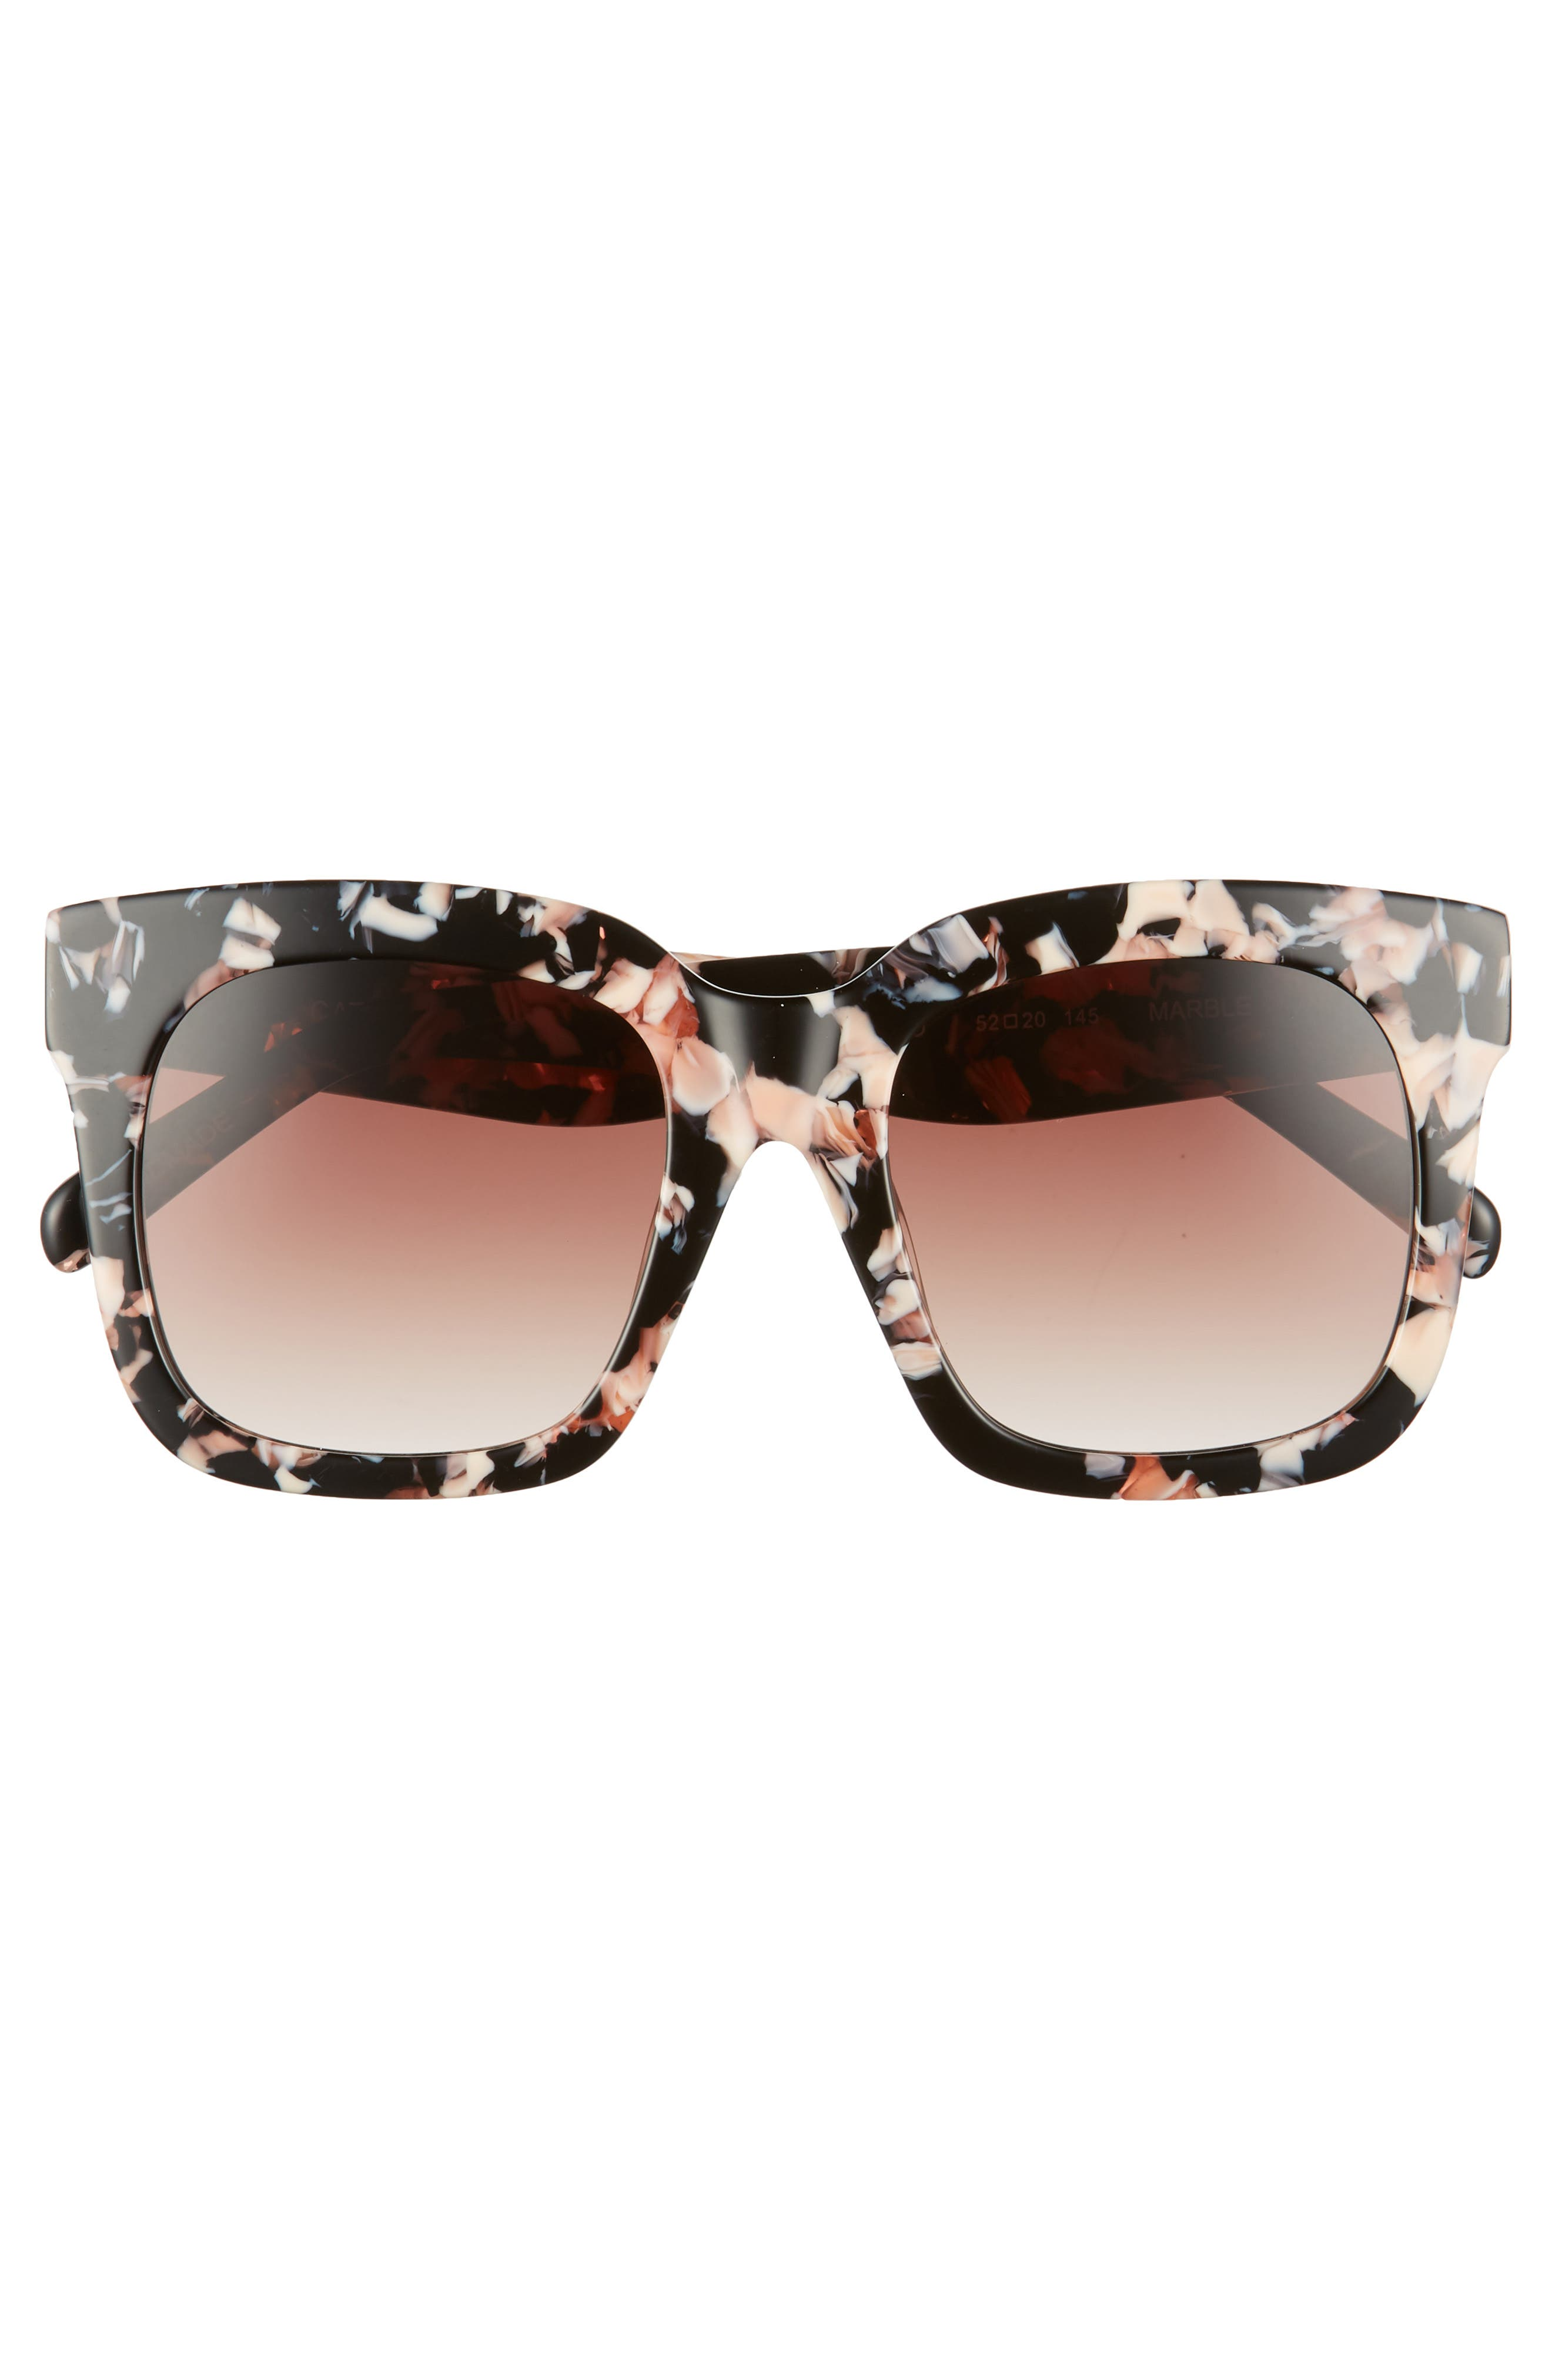 Coco 52mm Sunglasses,                             Alternate thumbnail 3, color,                             Black Pink Marble